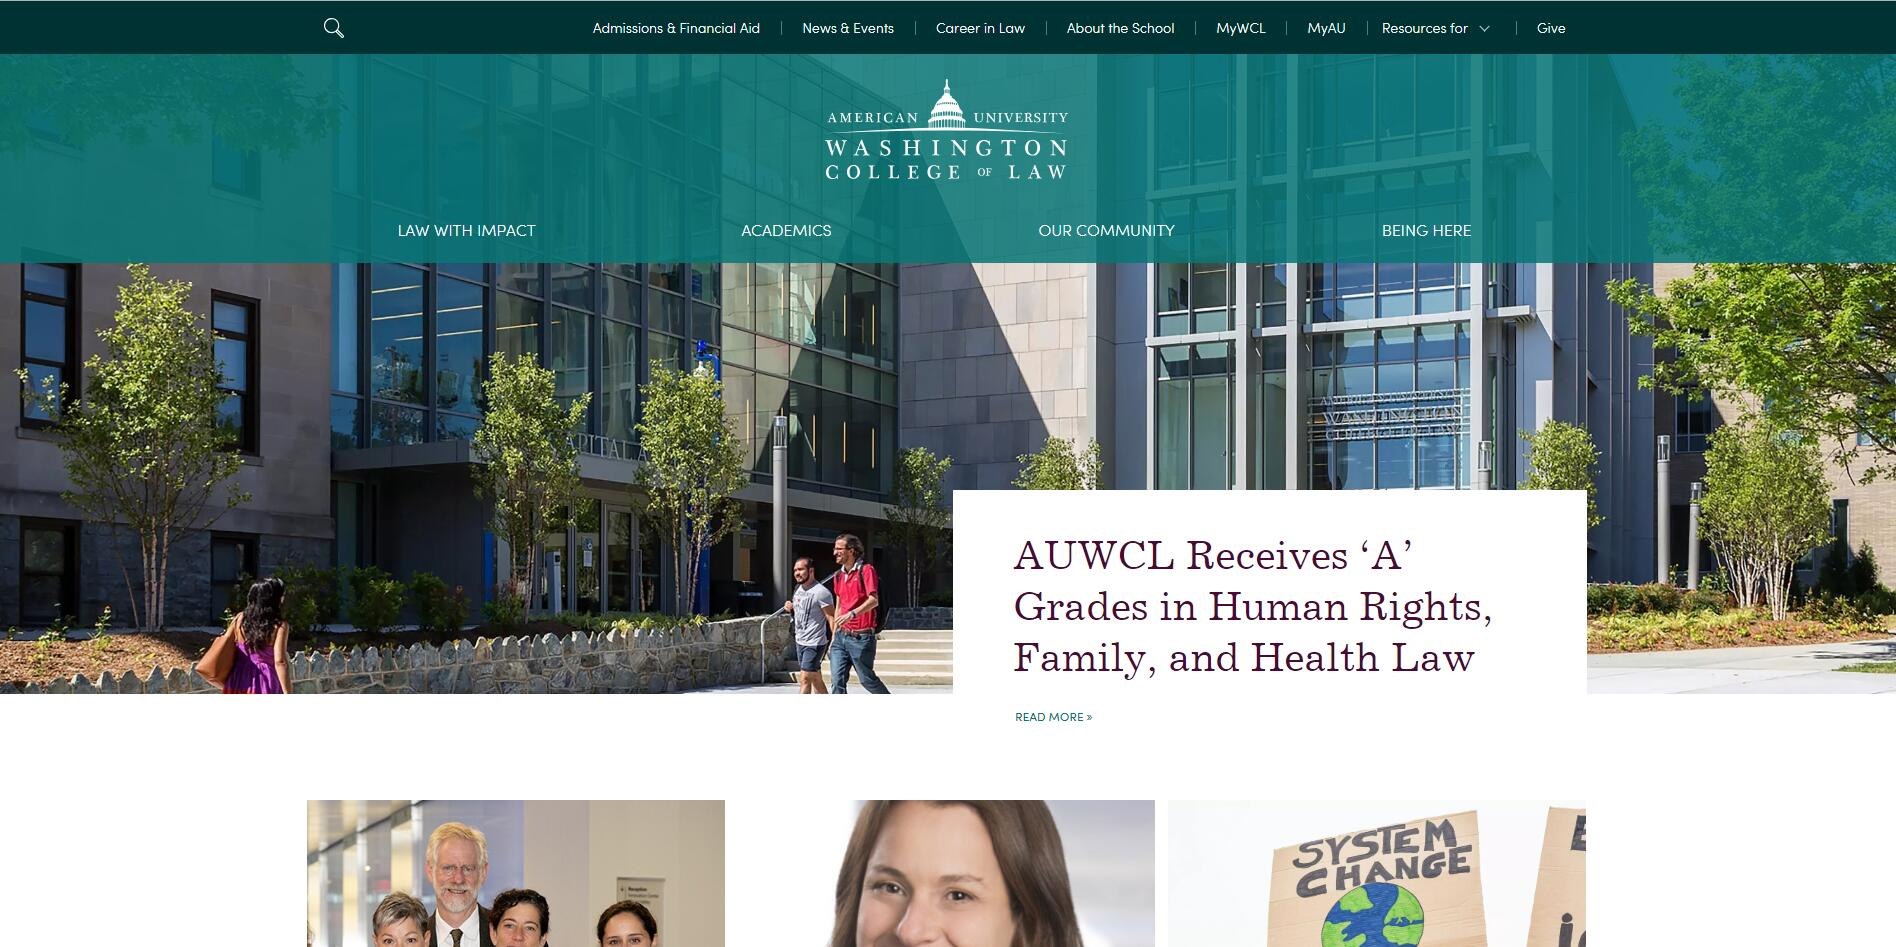 The Washington College of Law at American University